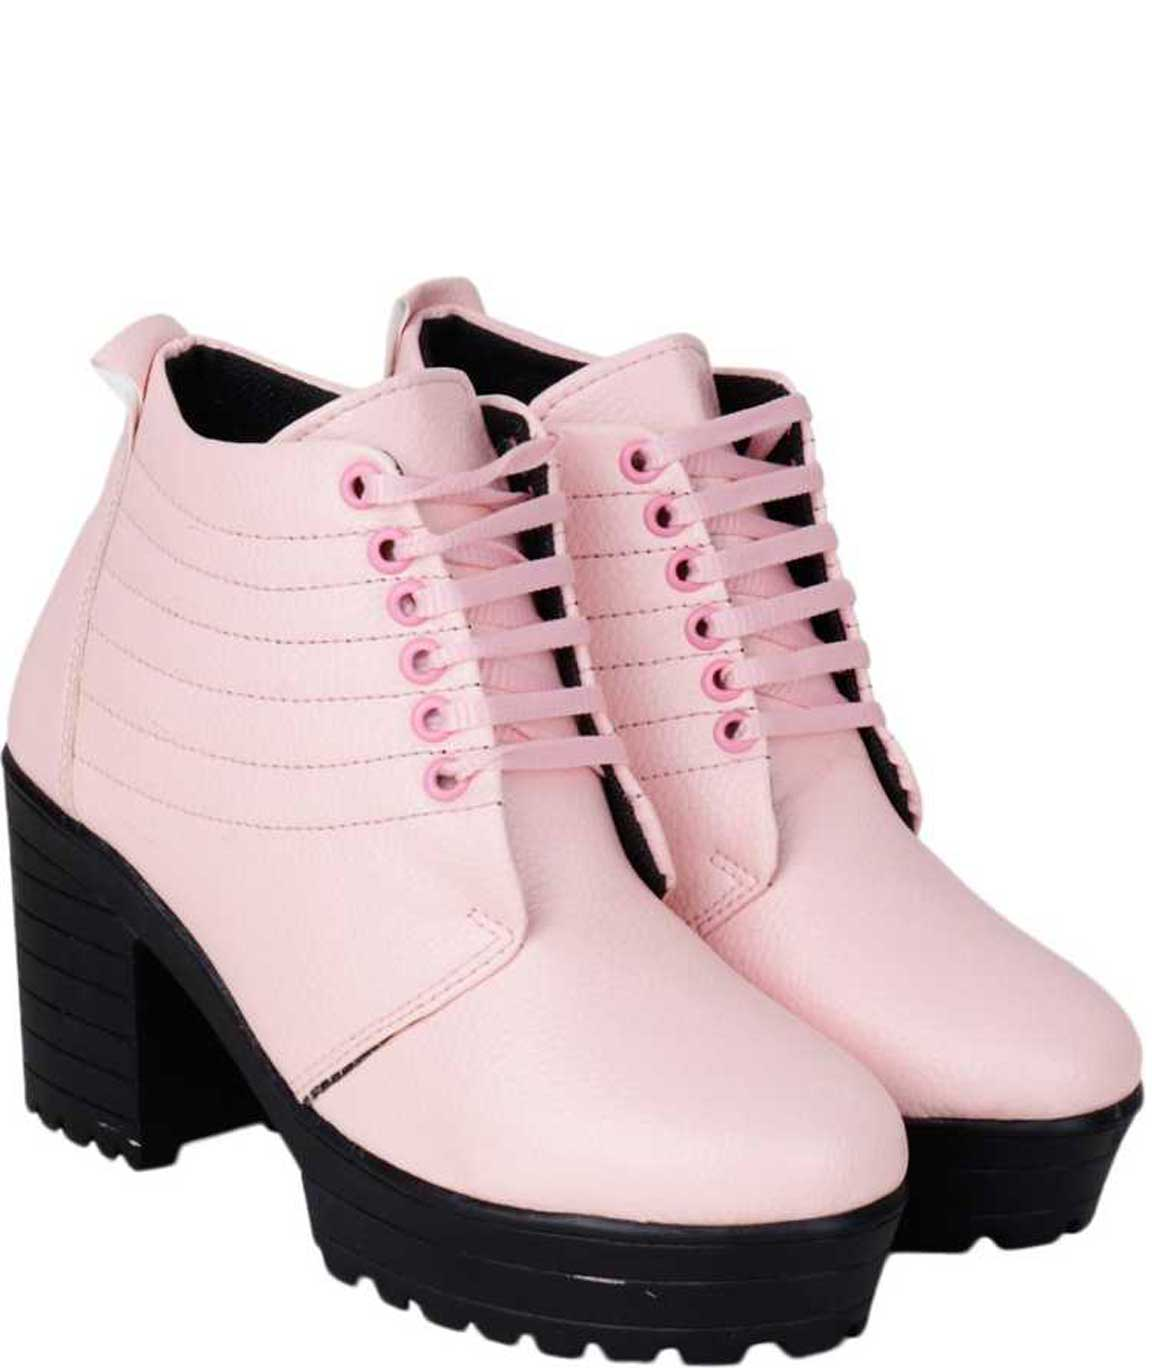 BOOT FOR WOMEN (PINK)